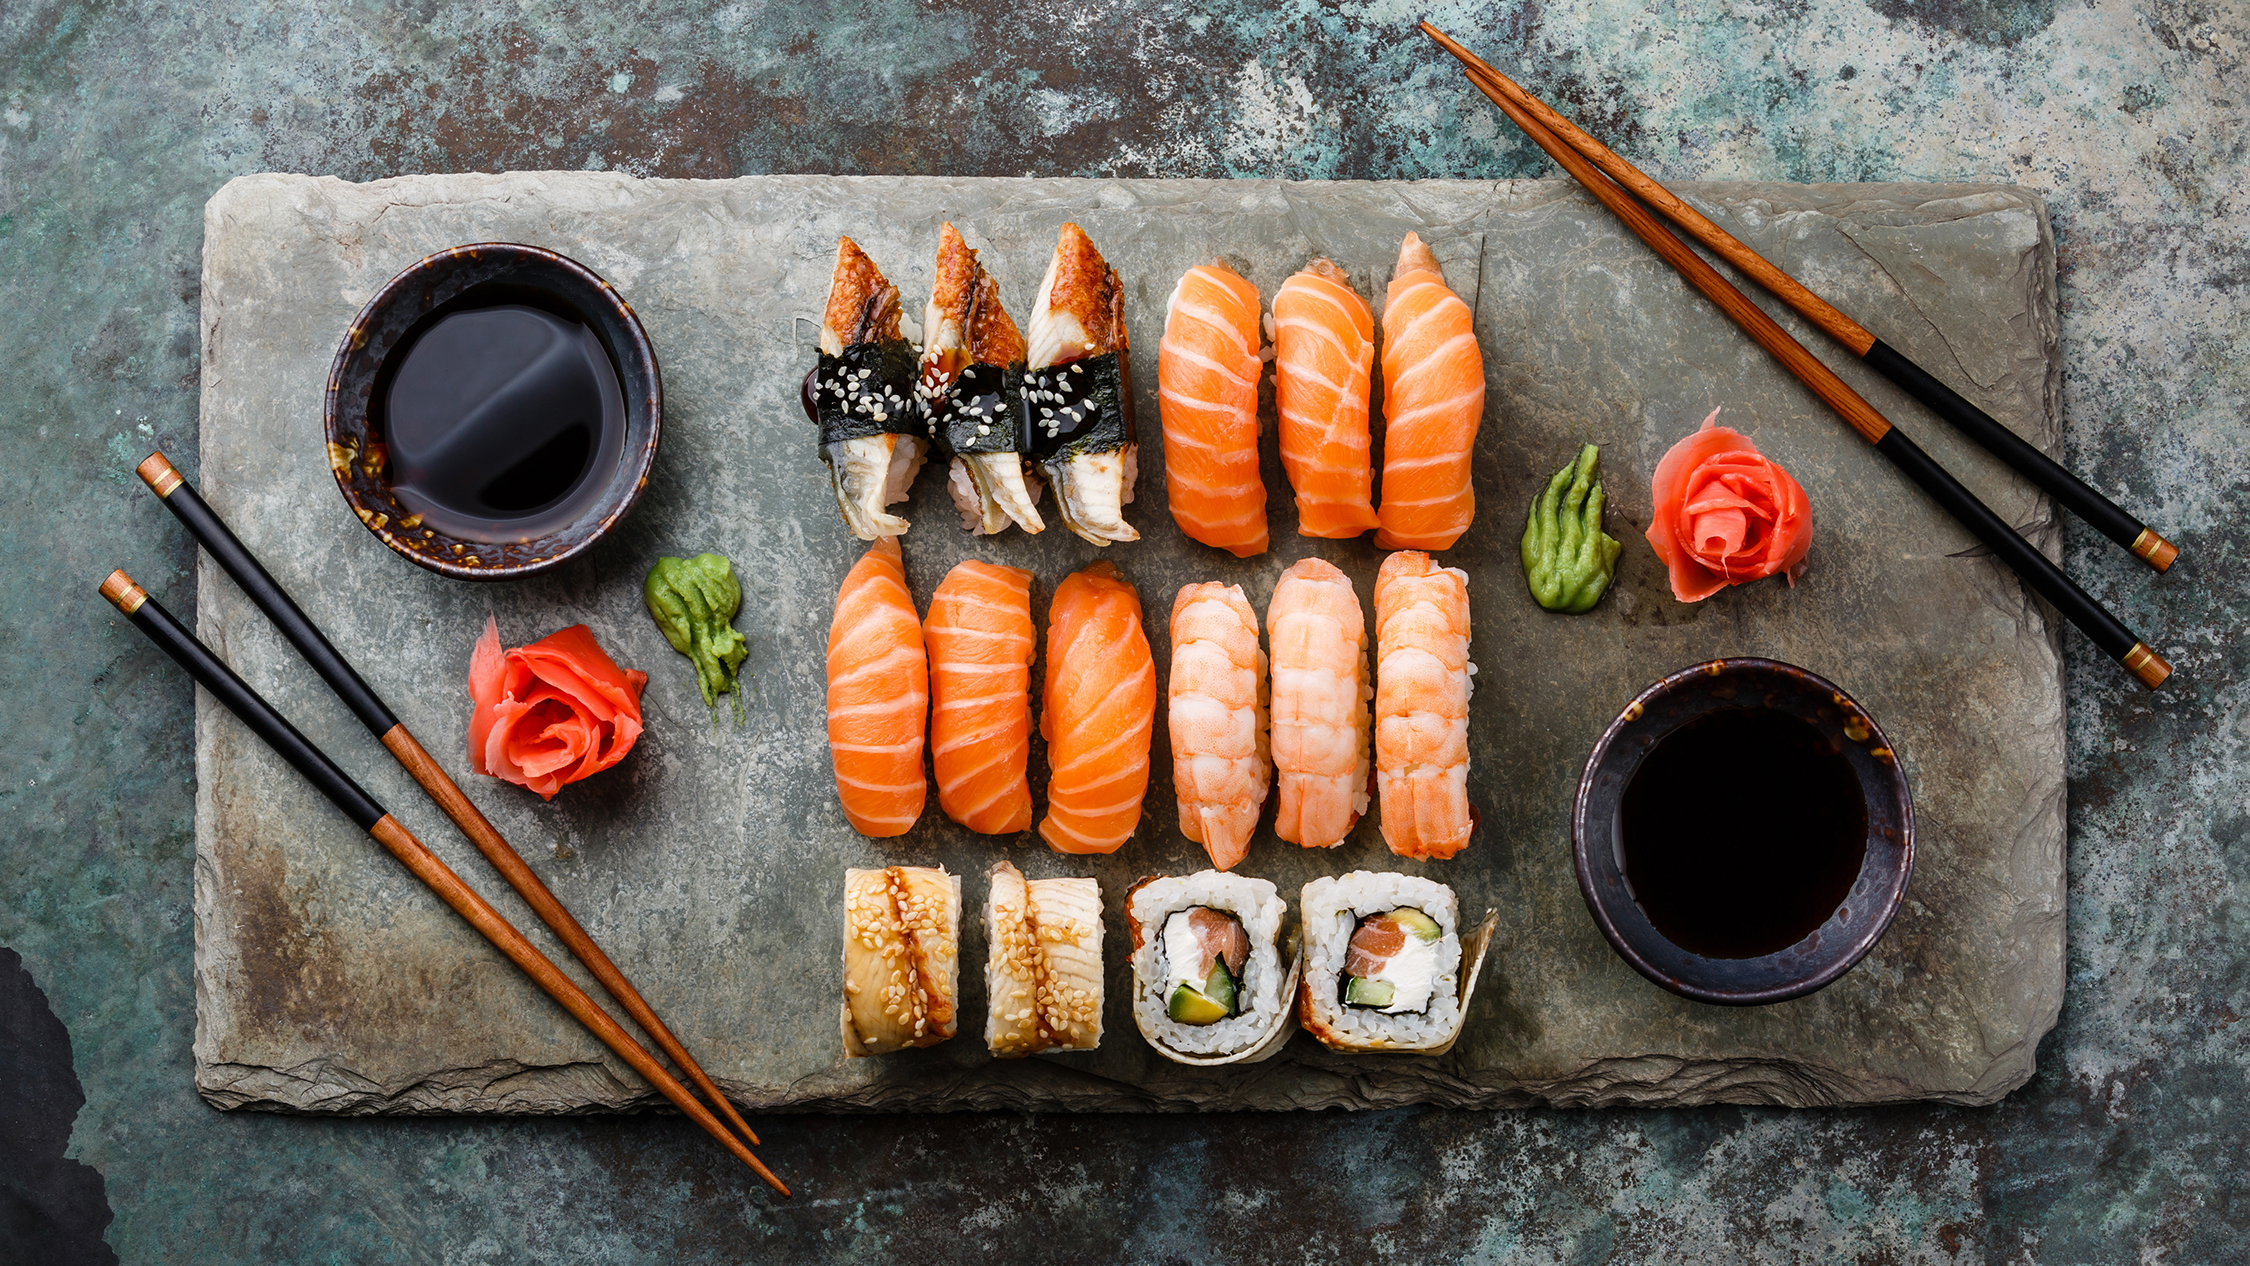 The best restaurants in Tel Aviv to get your sushi fix